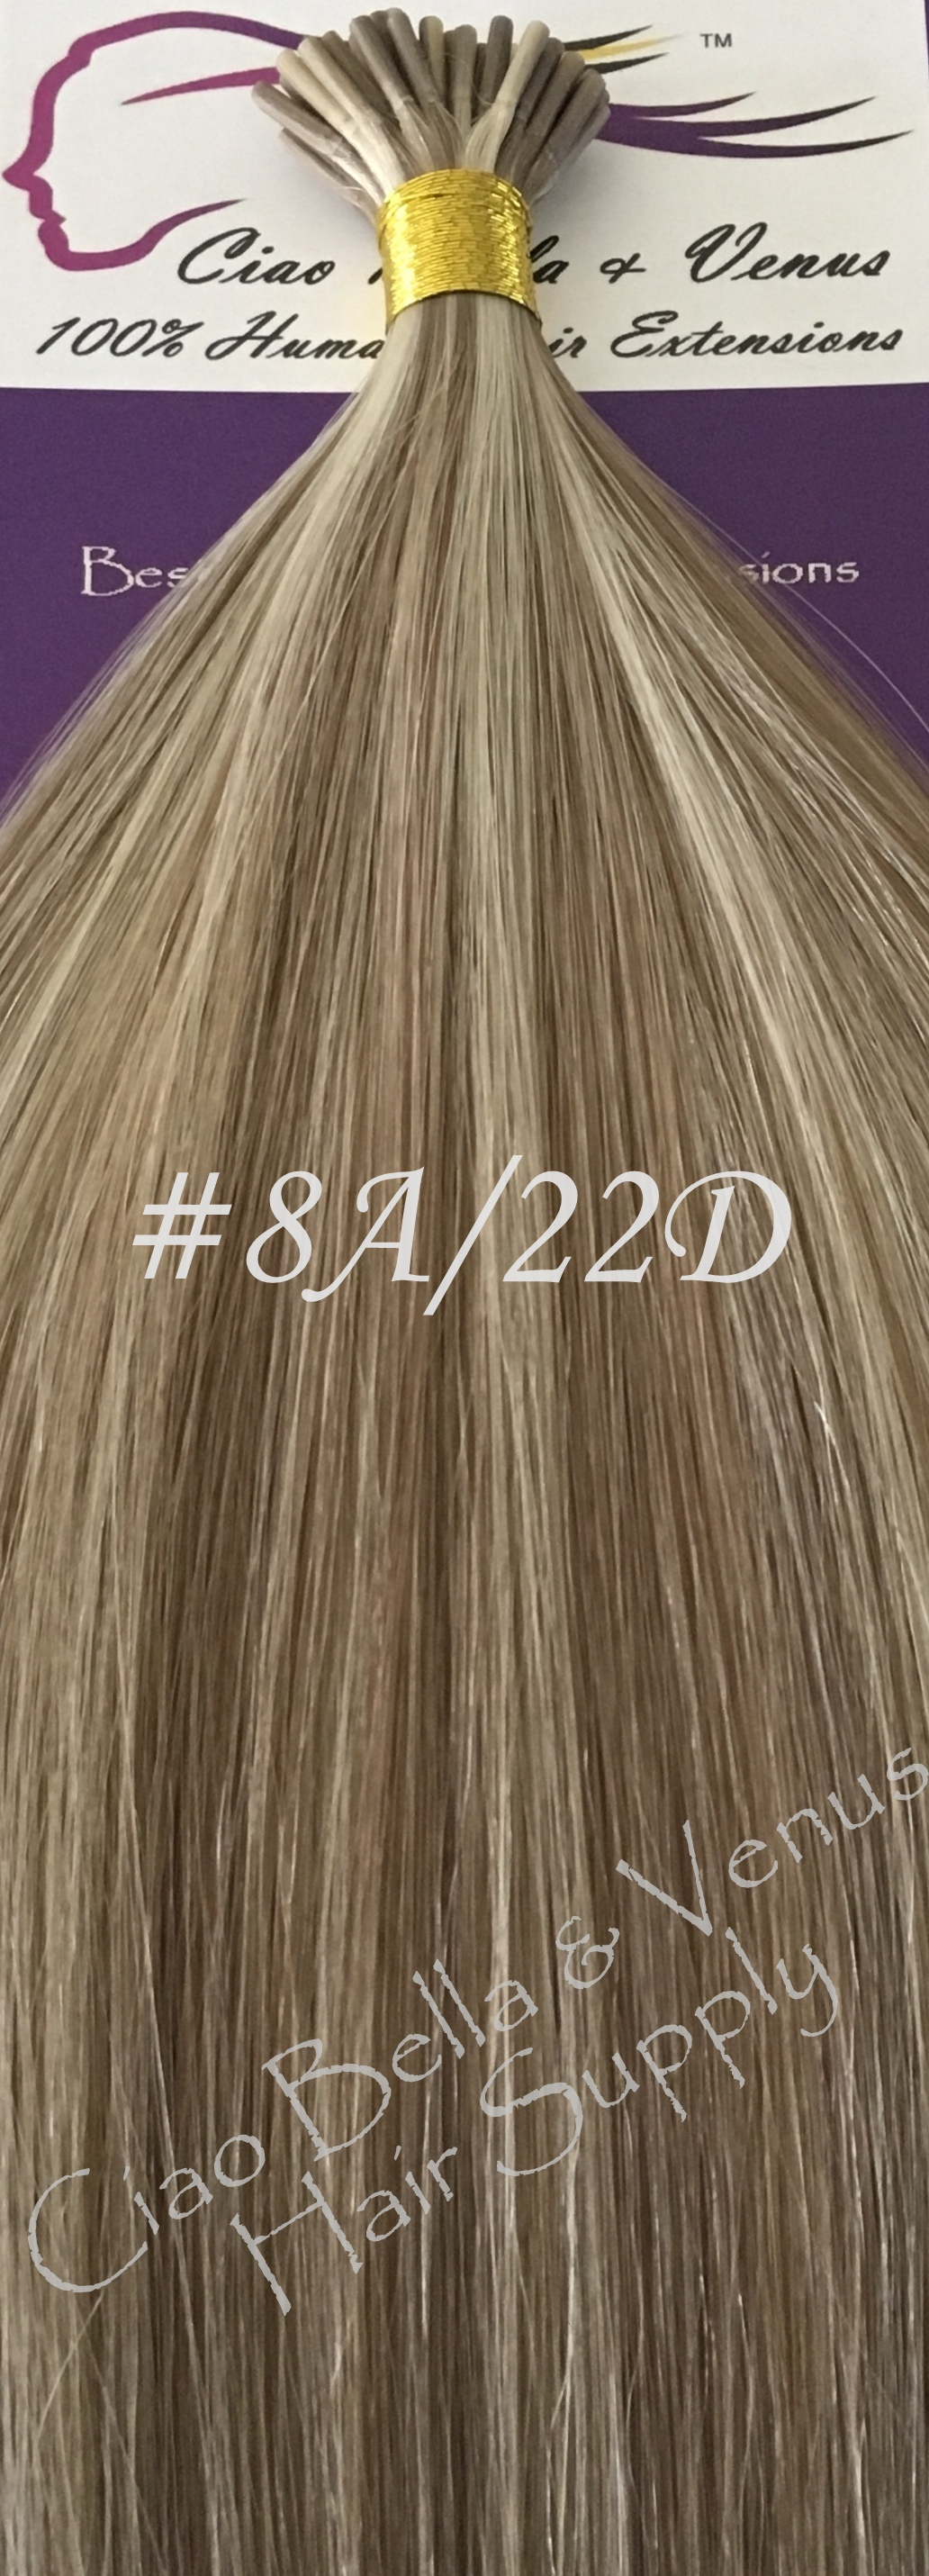 Buy Micro Link Hair Extensions 24 In St Color 8a 22d